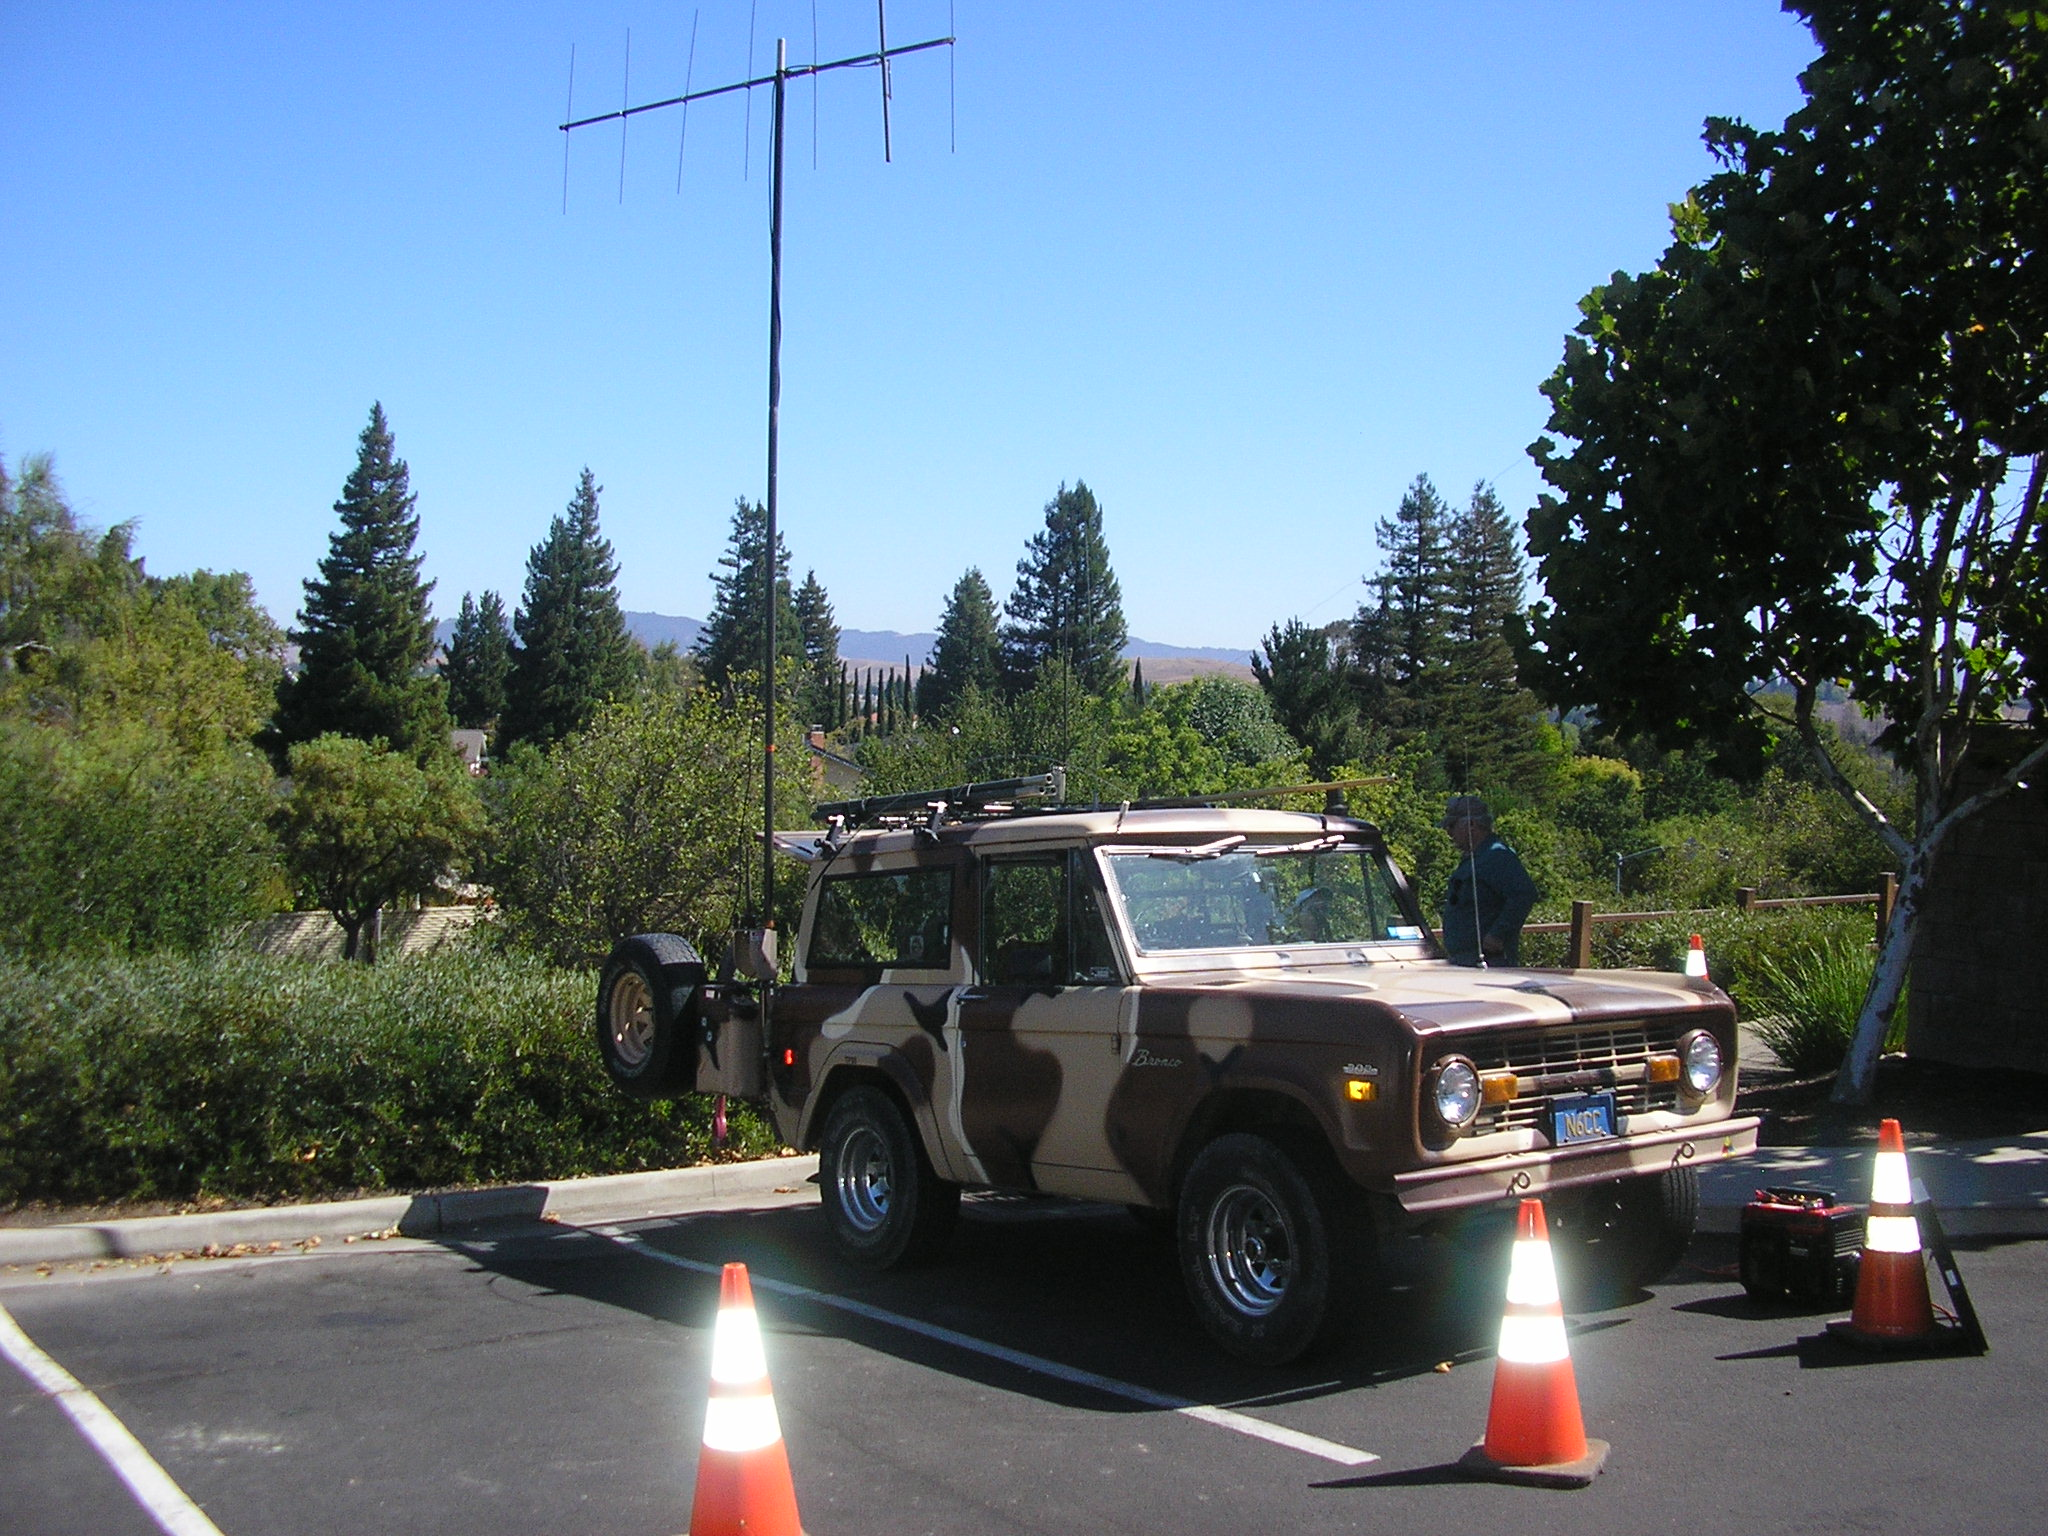 Fixed-portble 2-Meter Yagi on a RACES exercise